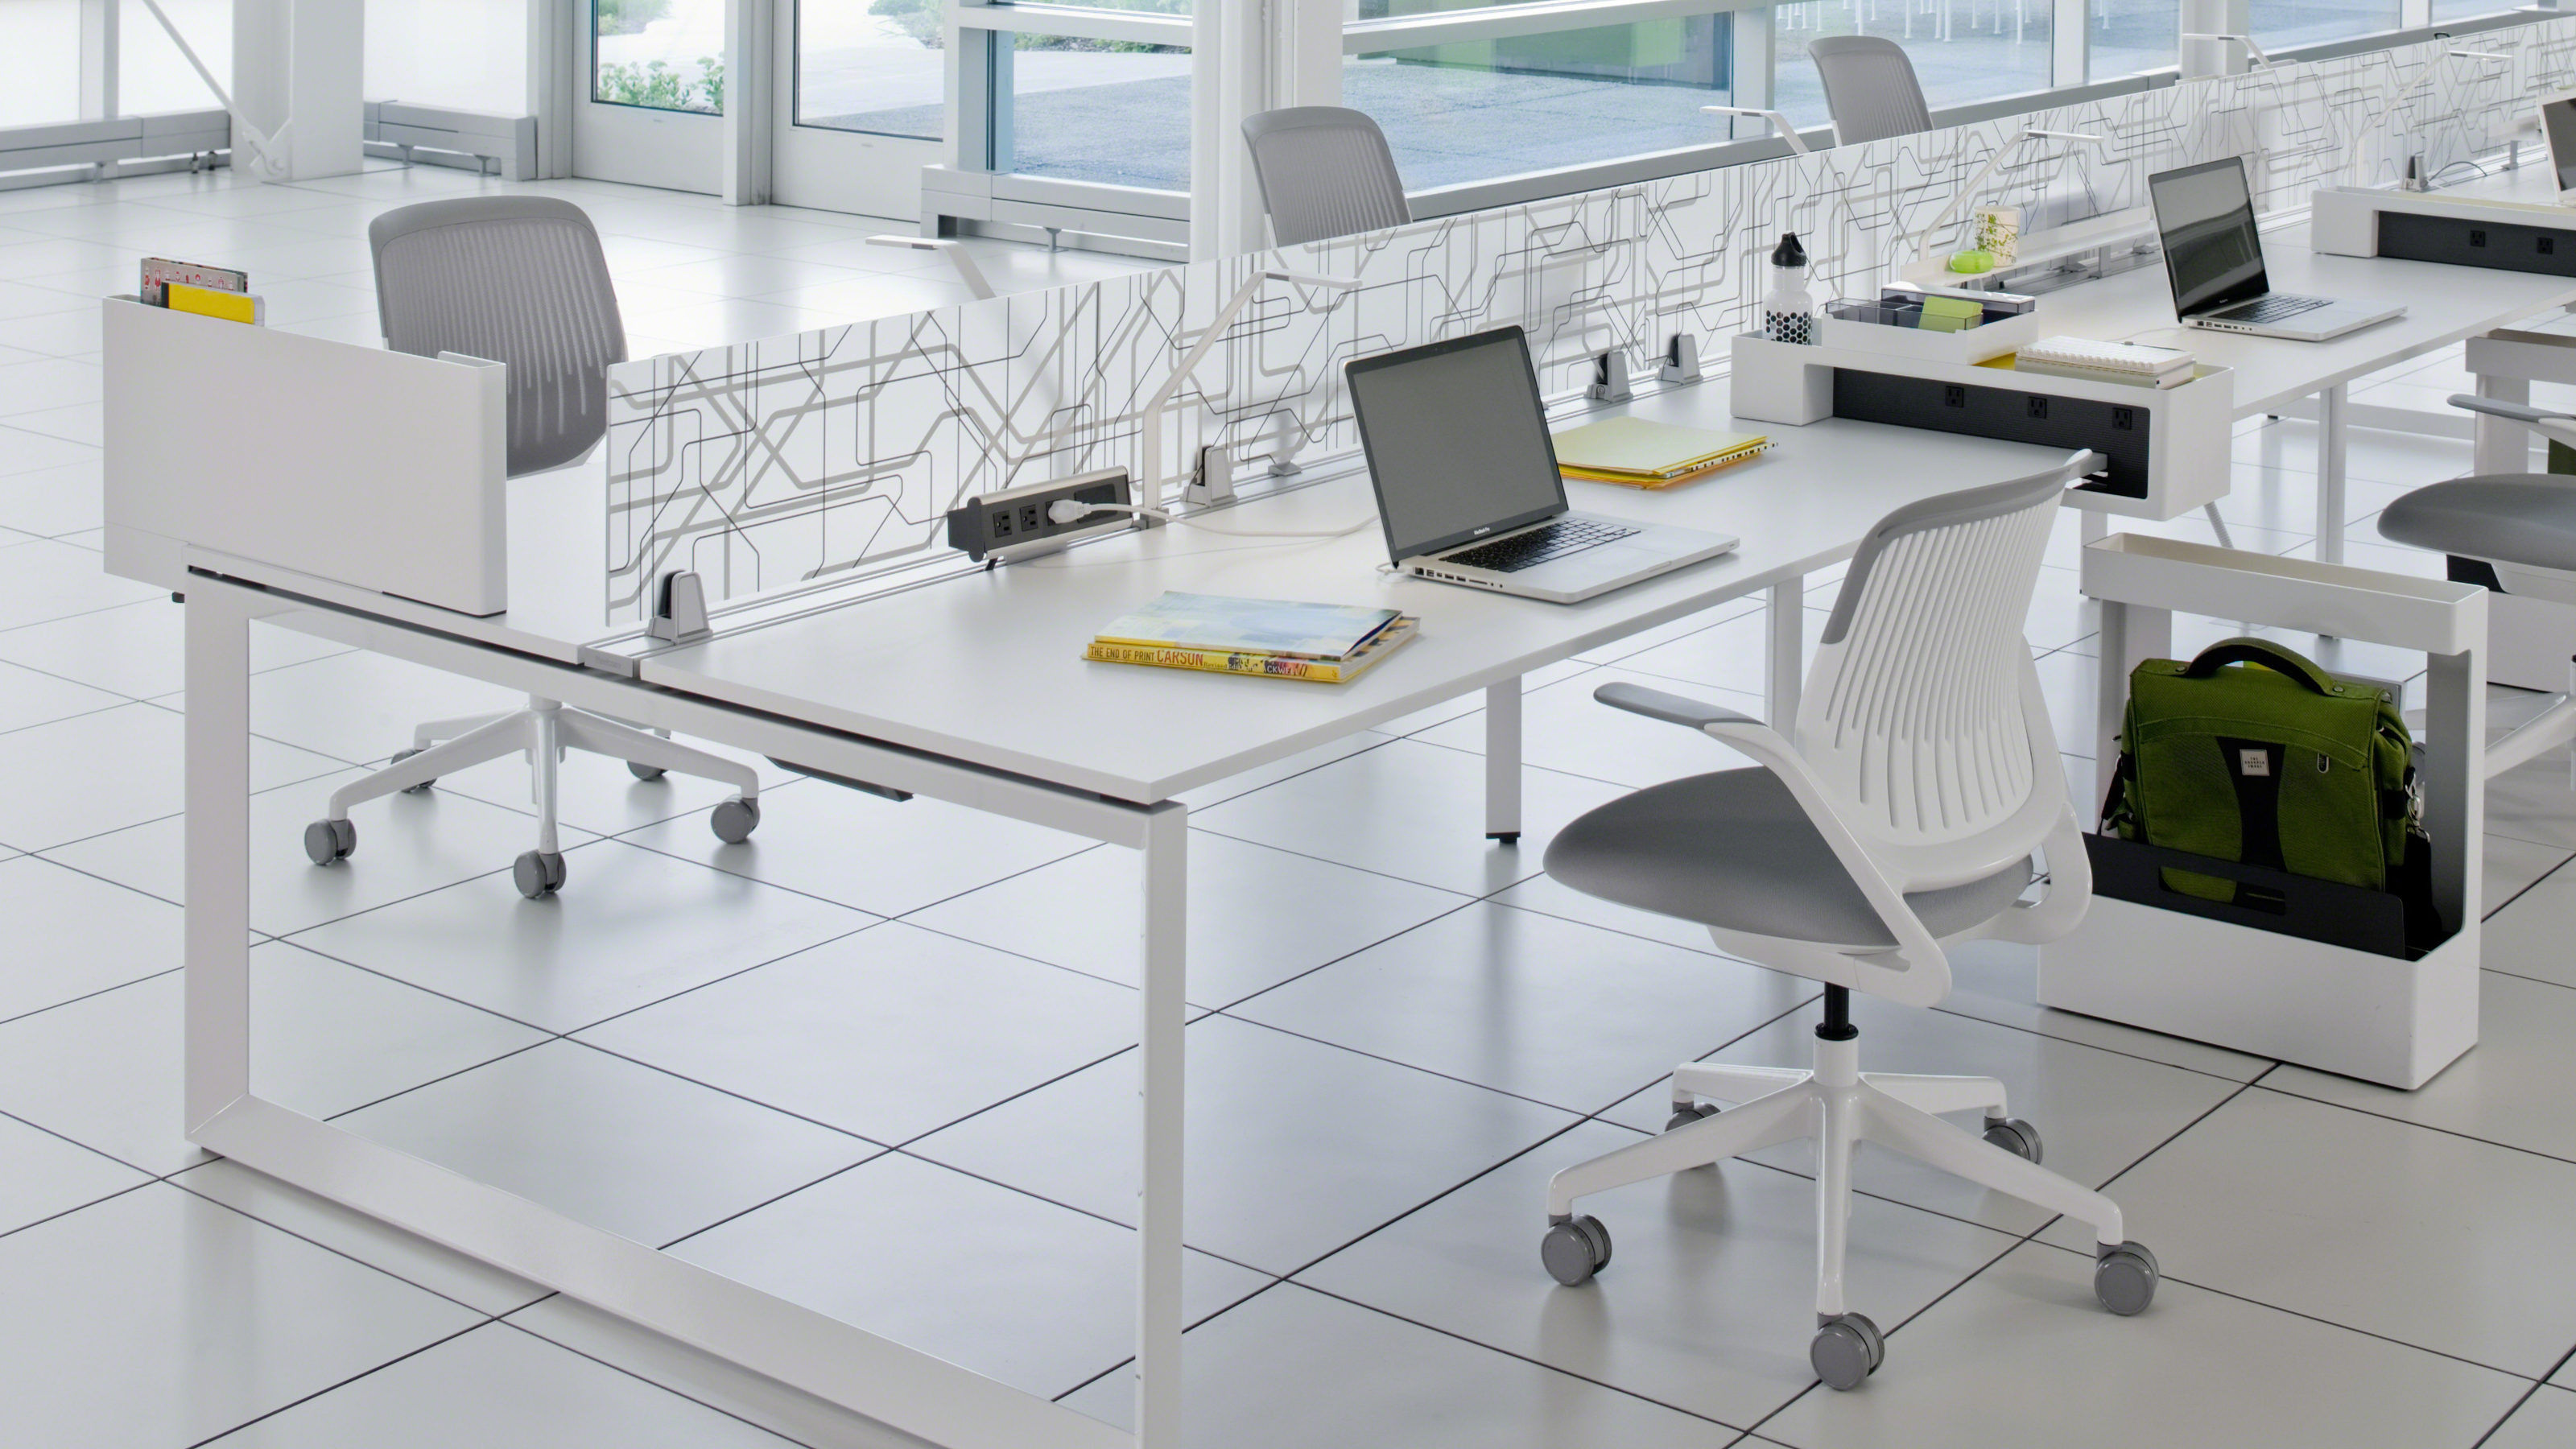 Benching An Idea Whose Time Has Come Again Steelcase